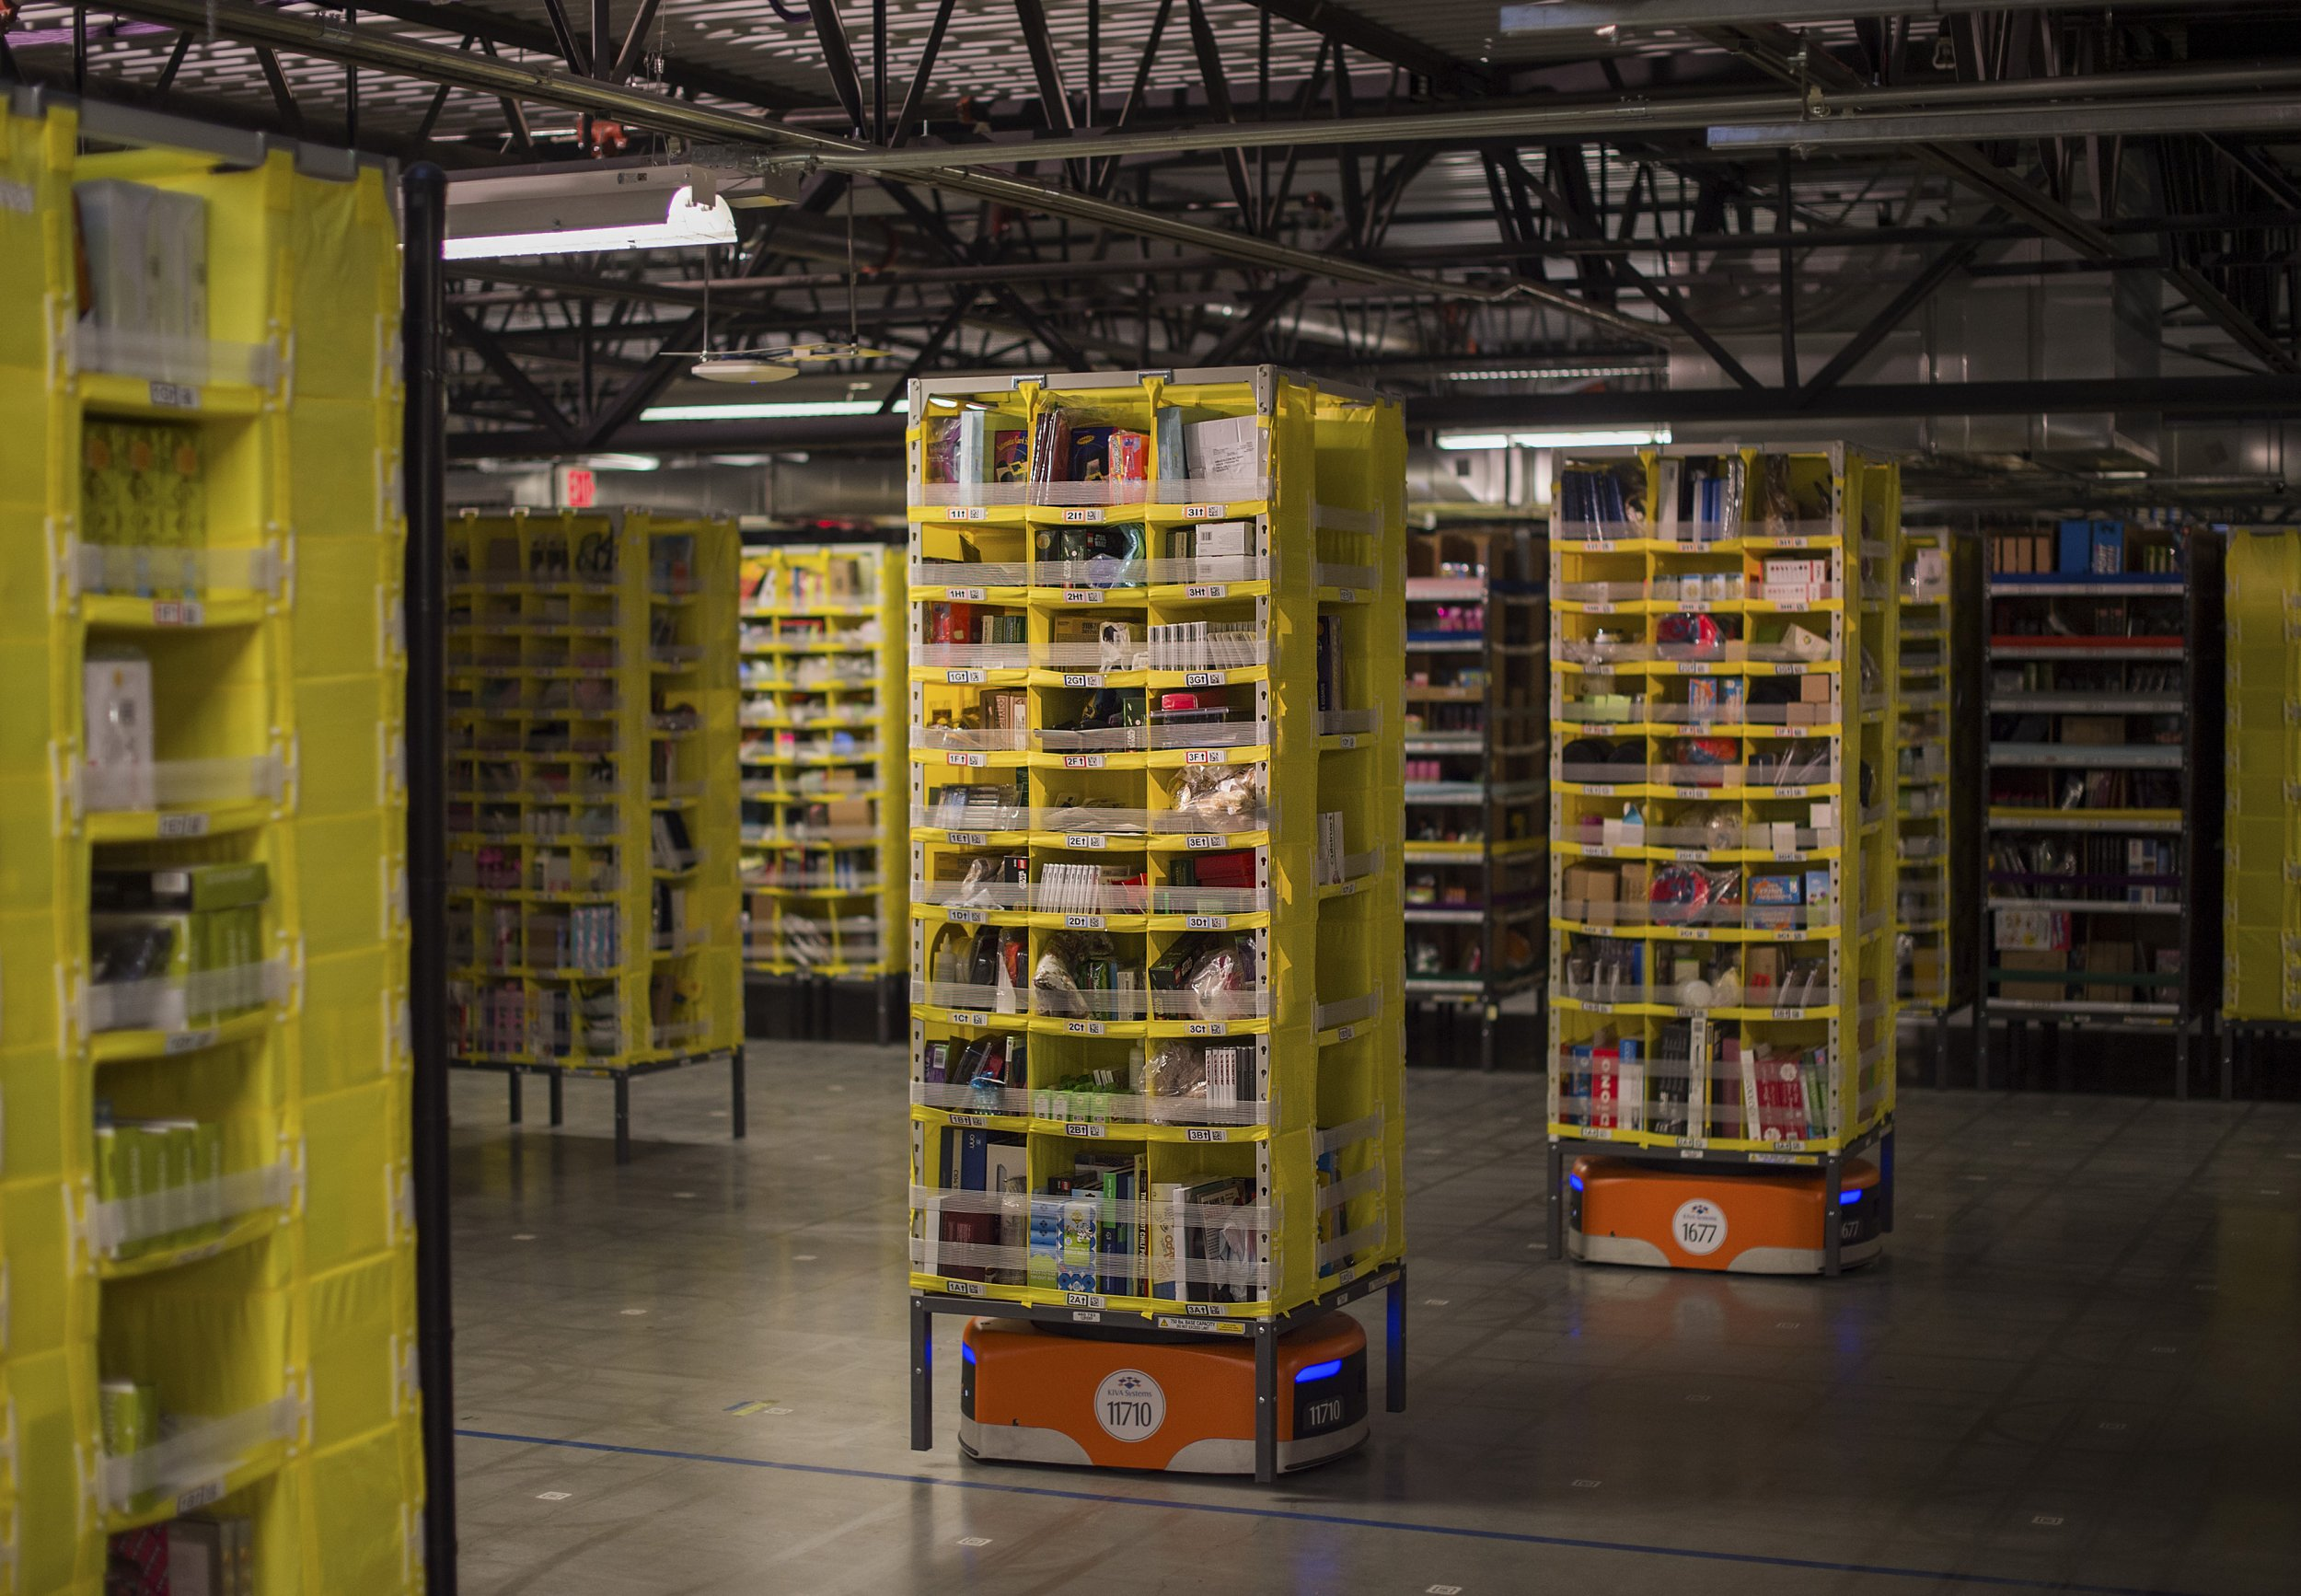 Robots Are the Future: Amazon Machines Are Just the Beginning